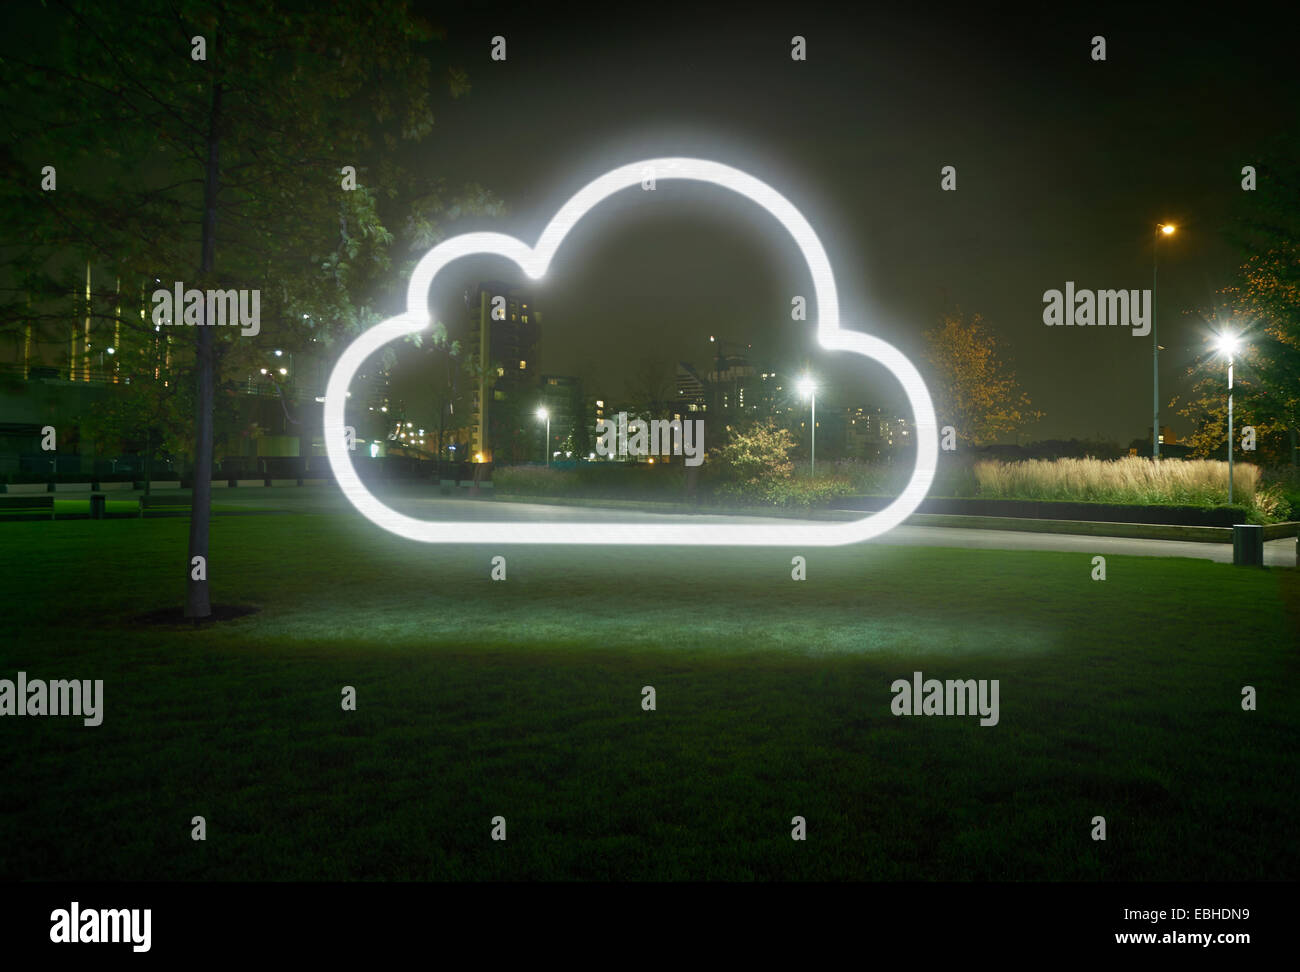 Glowing cloud symbol in city park at night - Stock Image